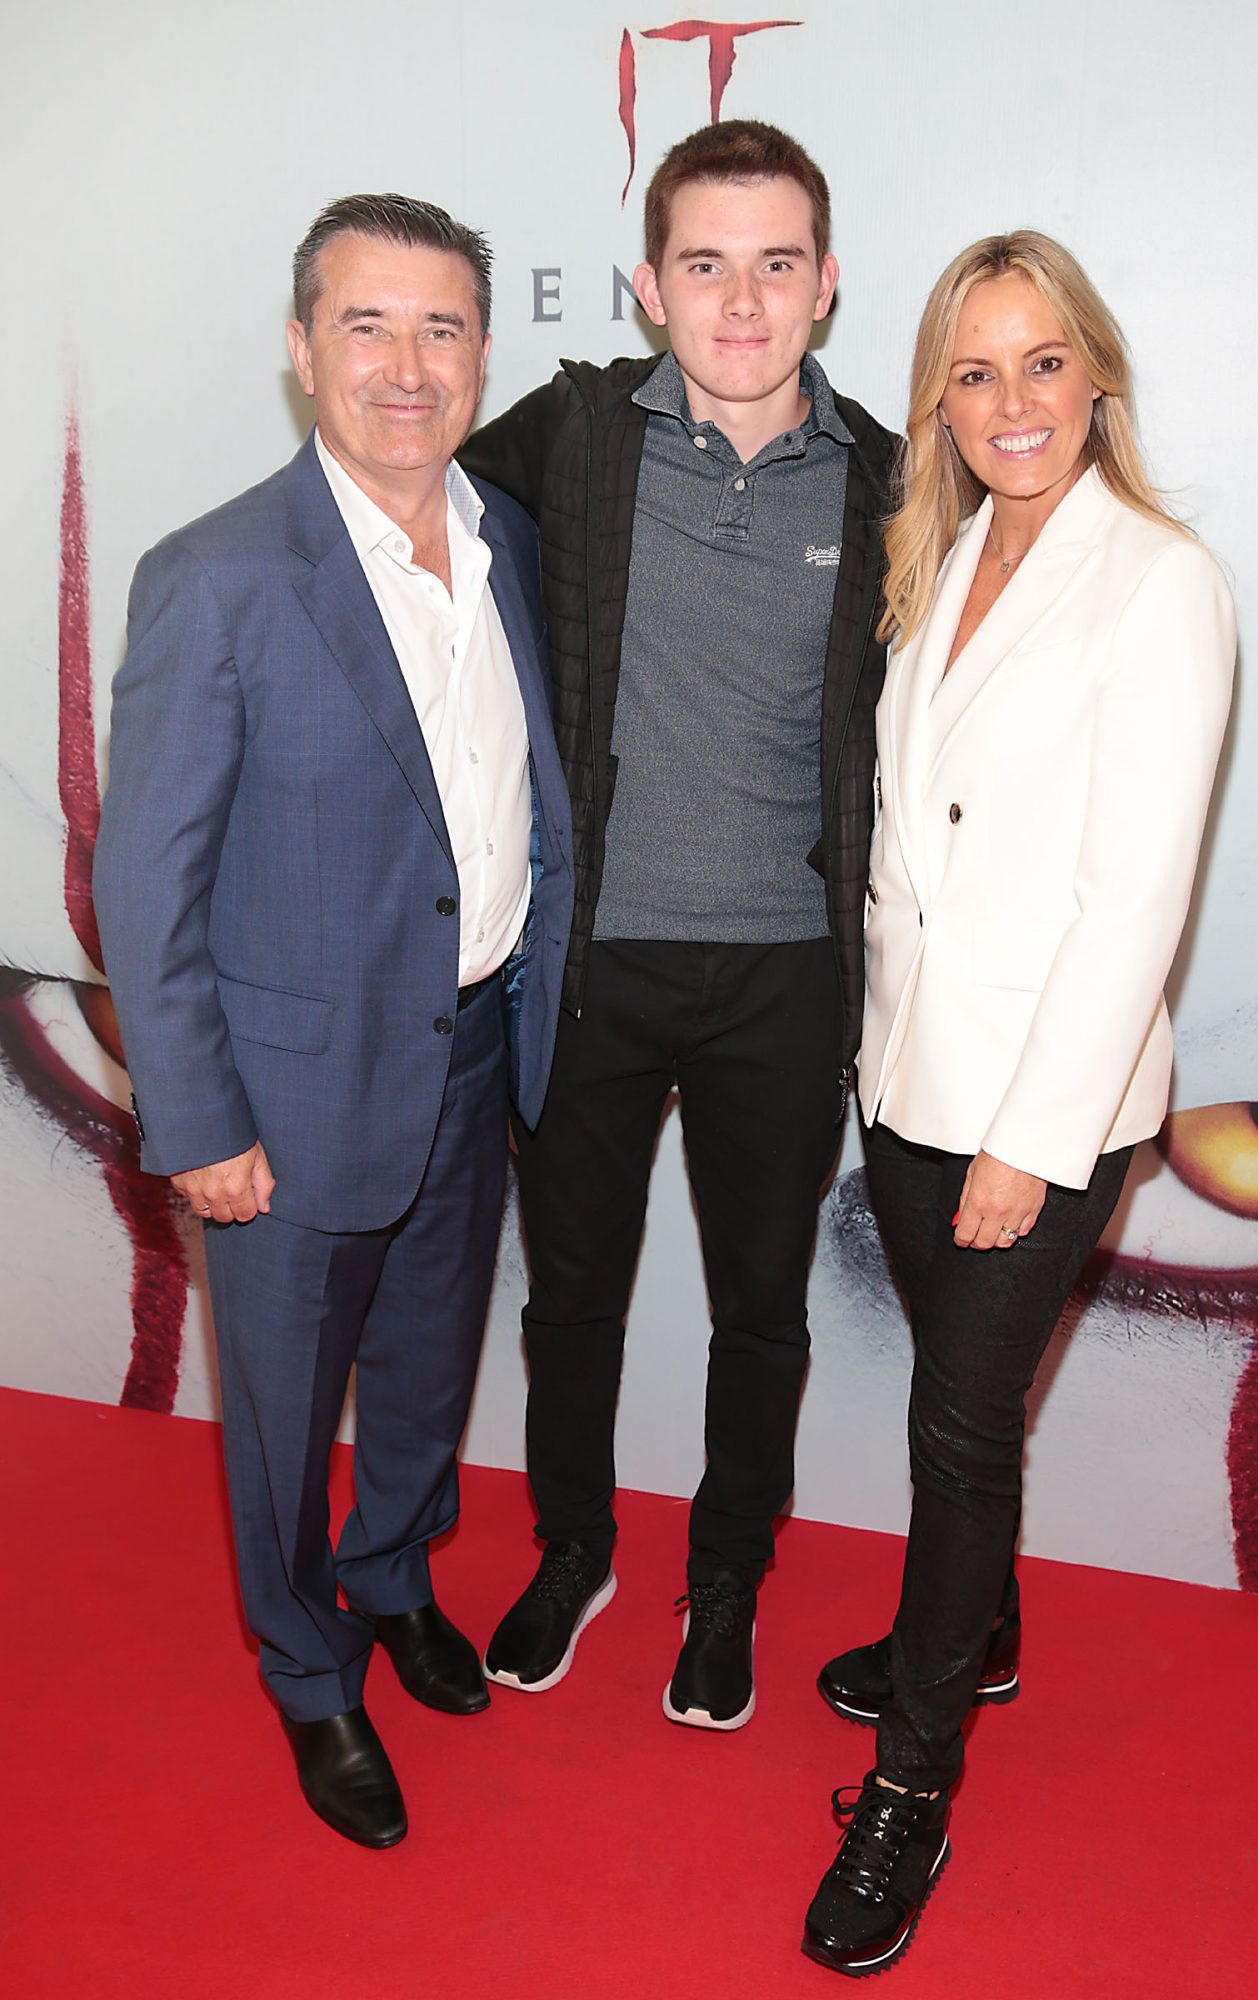 Martin King ,Alex King and Jenny McCarthy at the Irish premiere of IT Chapter 2 at the Odeon Cinema in Point Square, Dublin. Pic: Brian McEvoy.